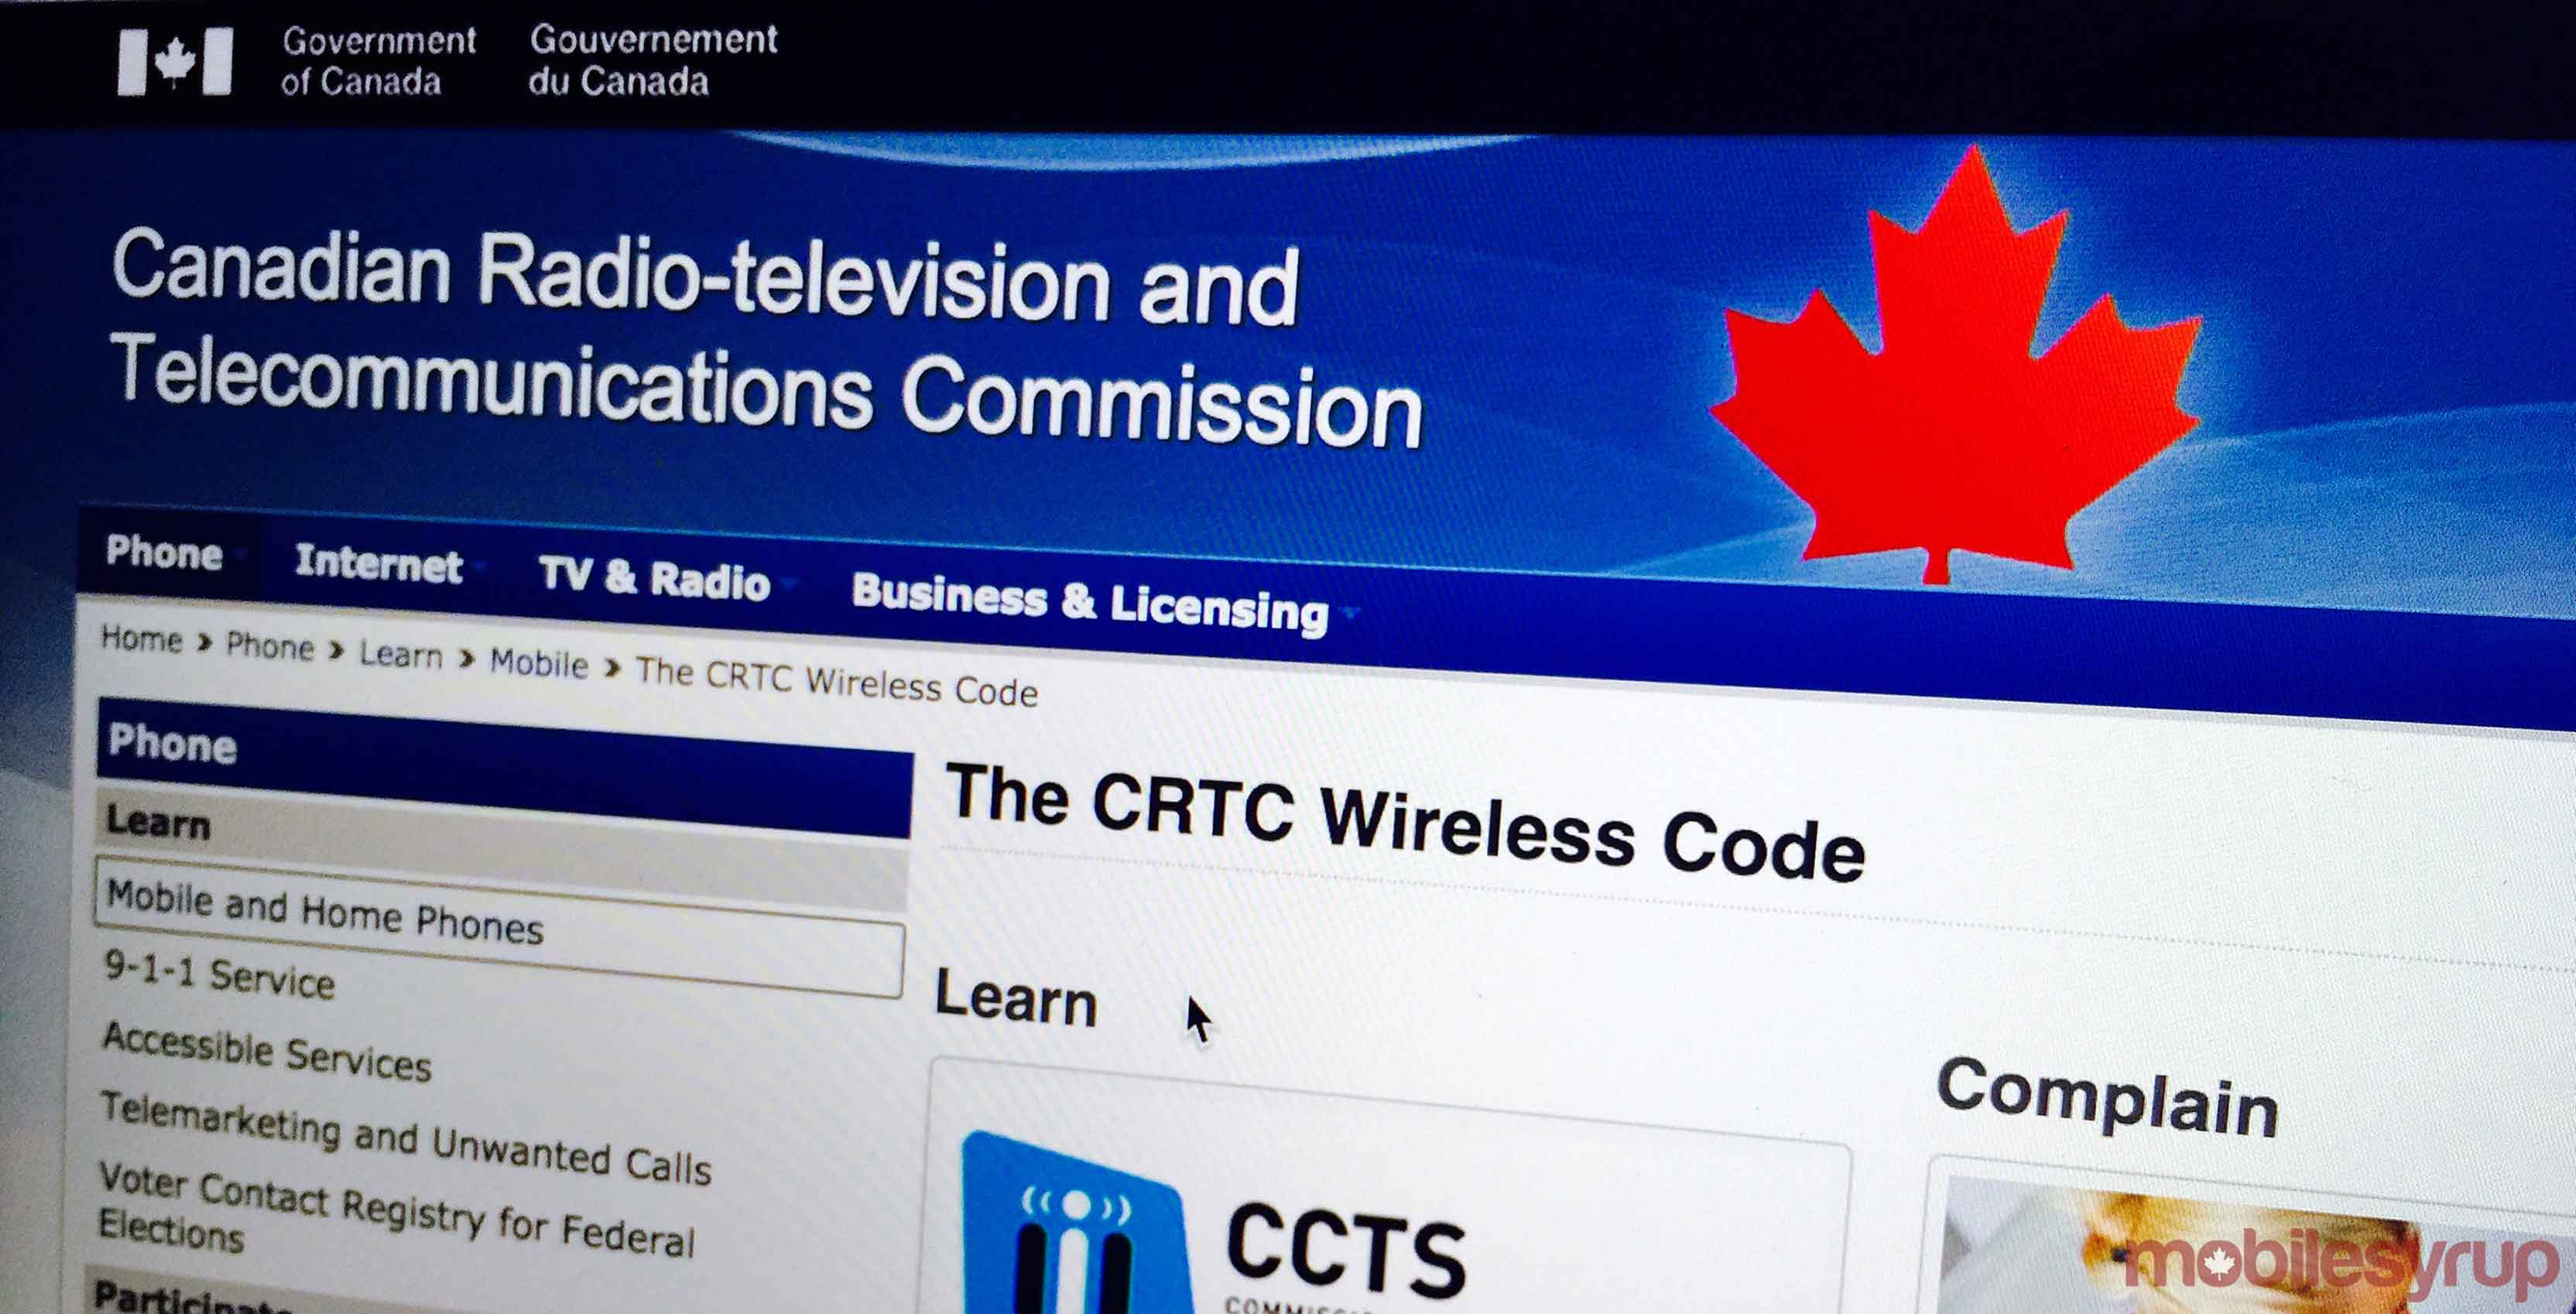 CRTC website - consumers should negotiate lower prices